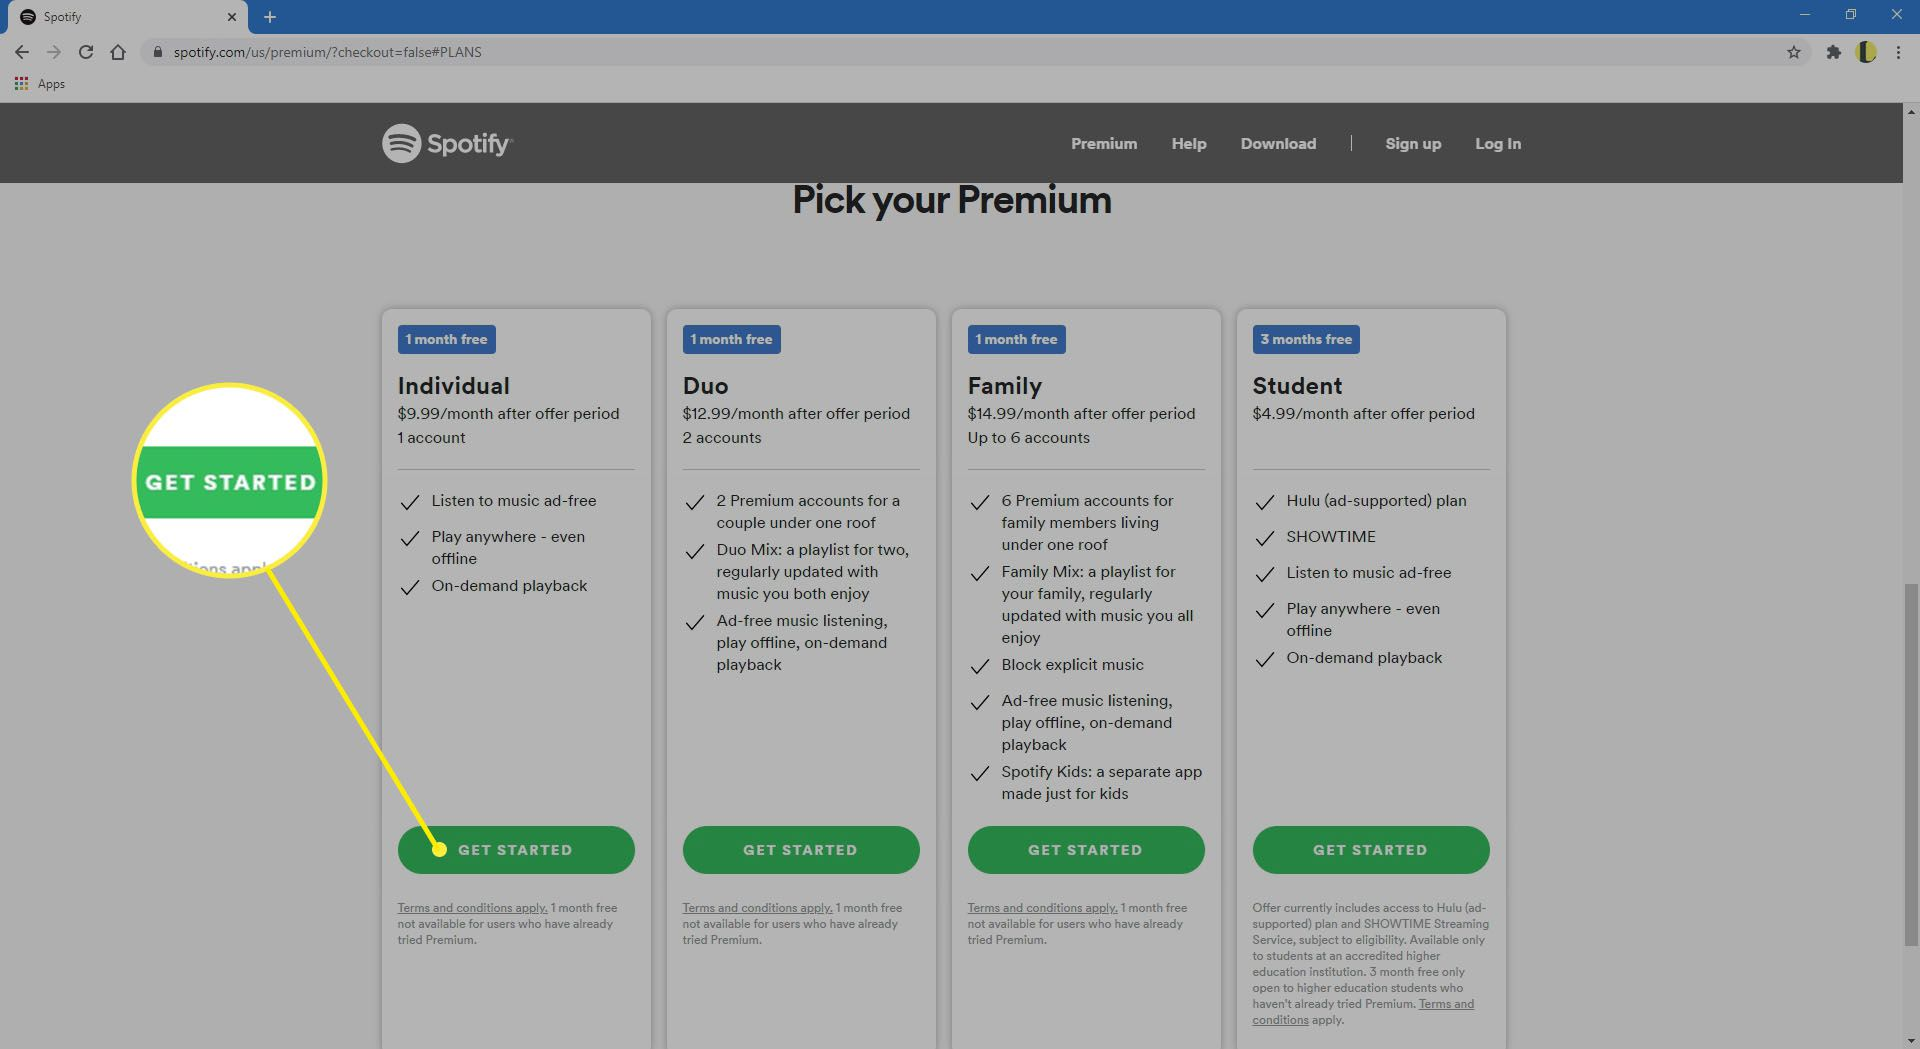 Selecting Get Started on the Spotify website.